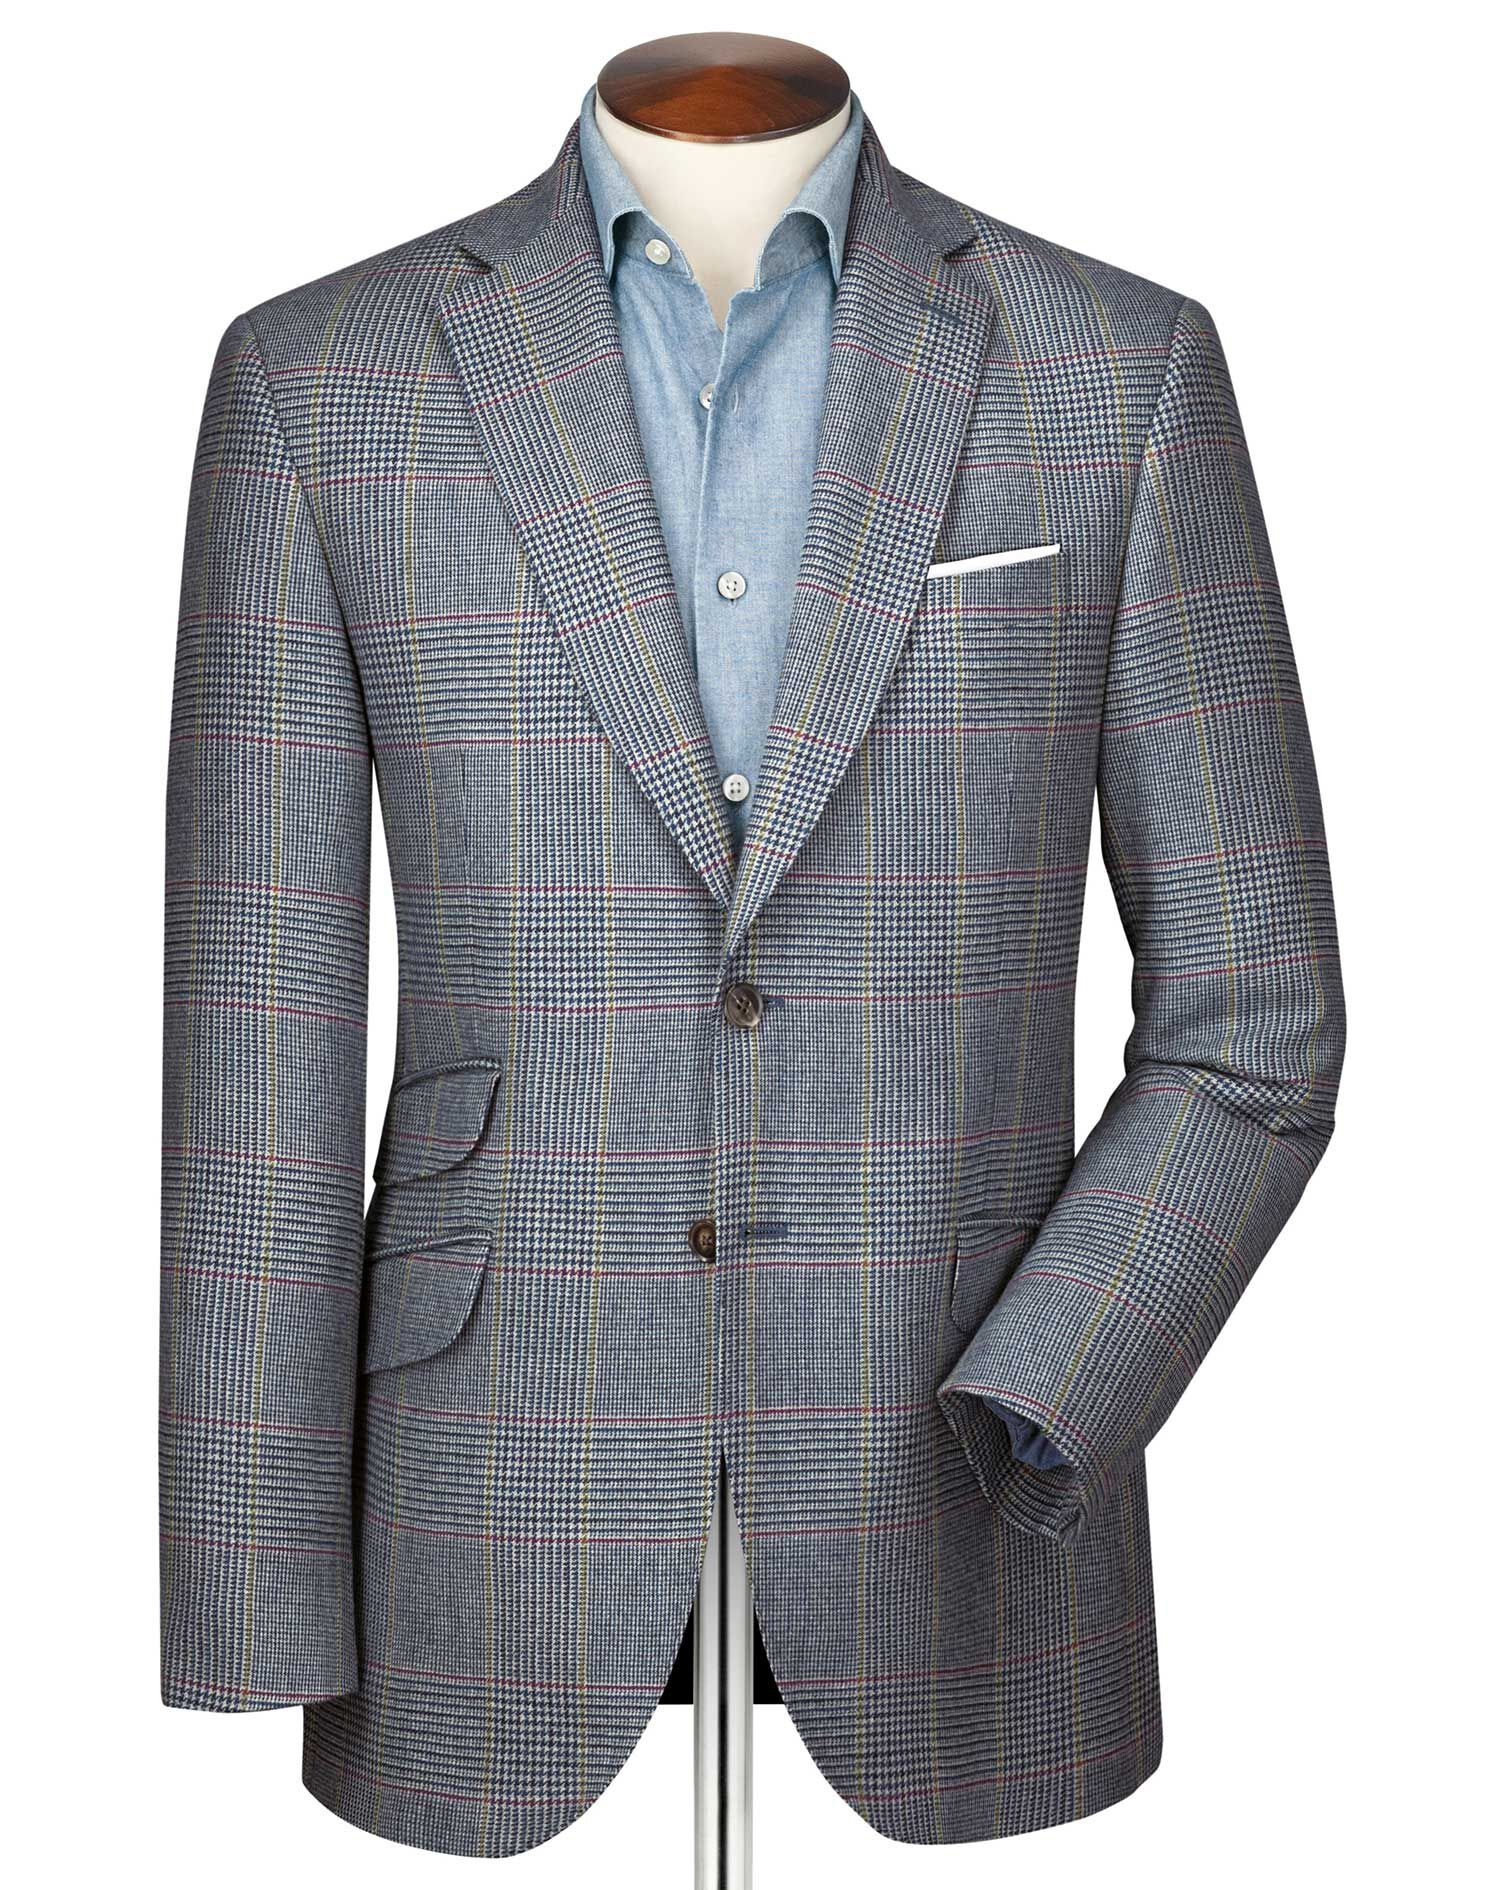 Slim Fit Blue Prince Of Wales Checkered Luxury Border Tweed Wool Jacket Size 40 by Charles Tyrwhitt